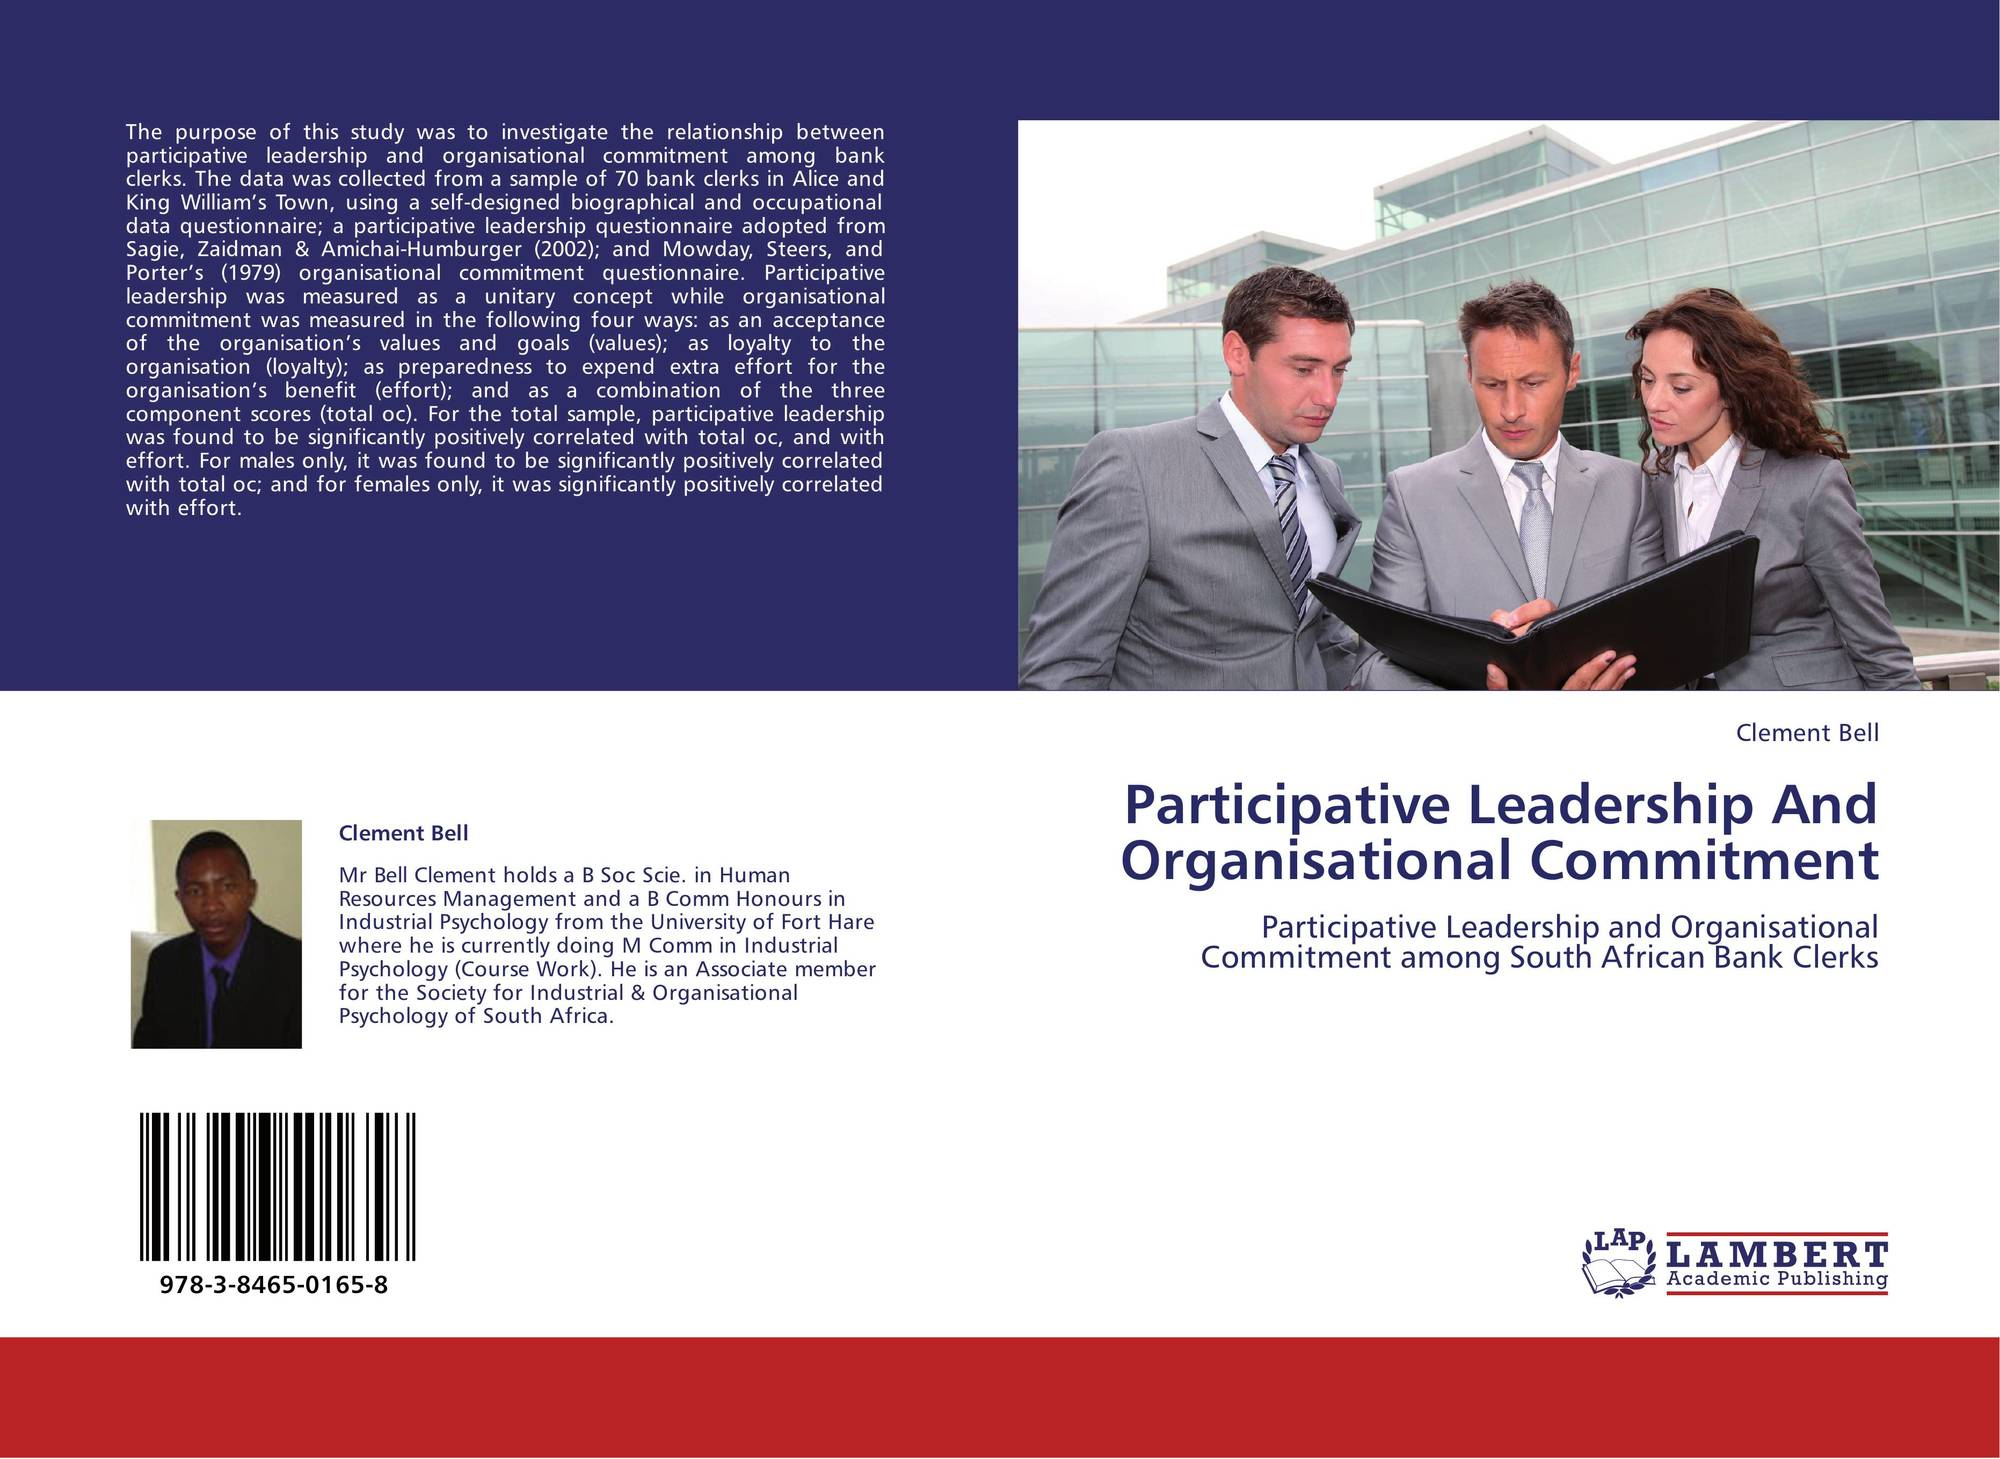 bookcover of participative leadership and organisational commitment 9783846501658